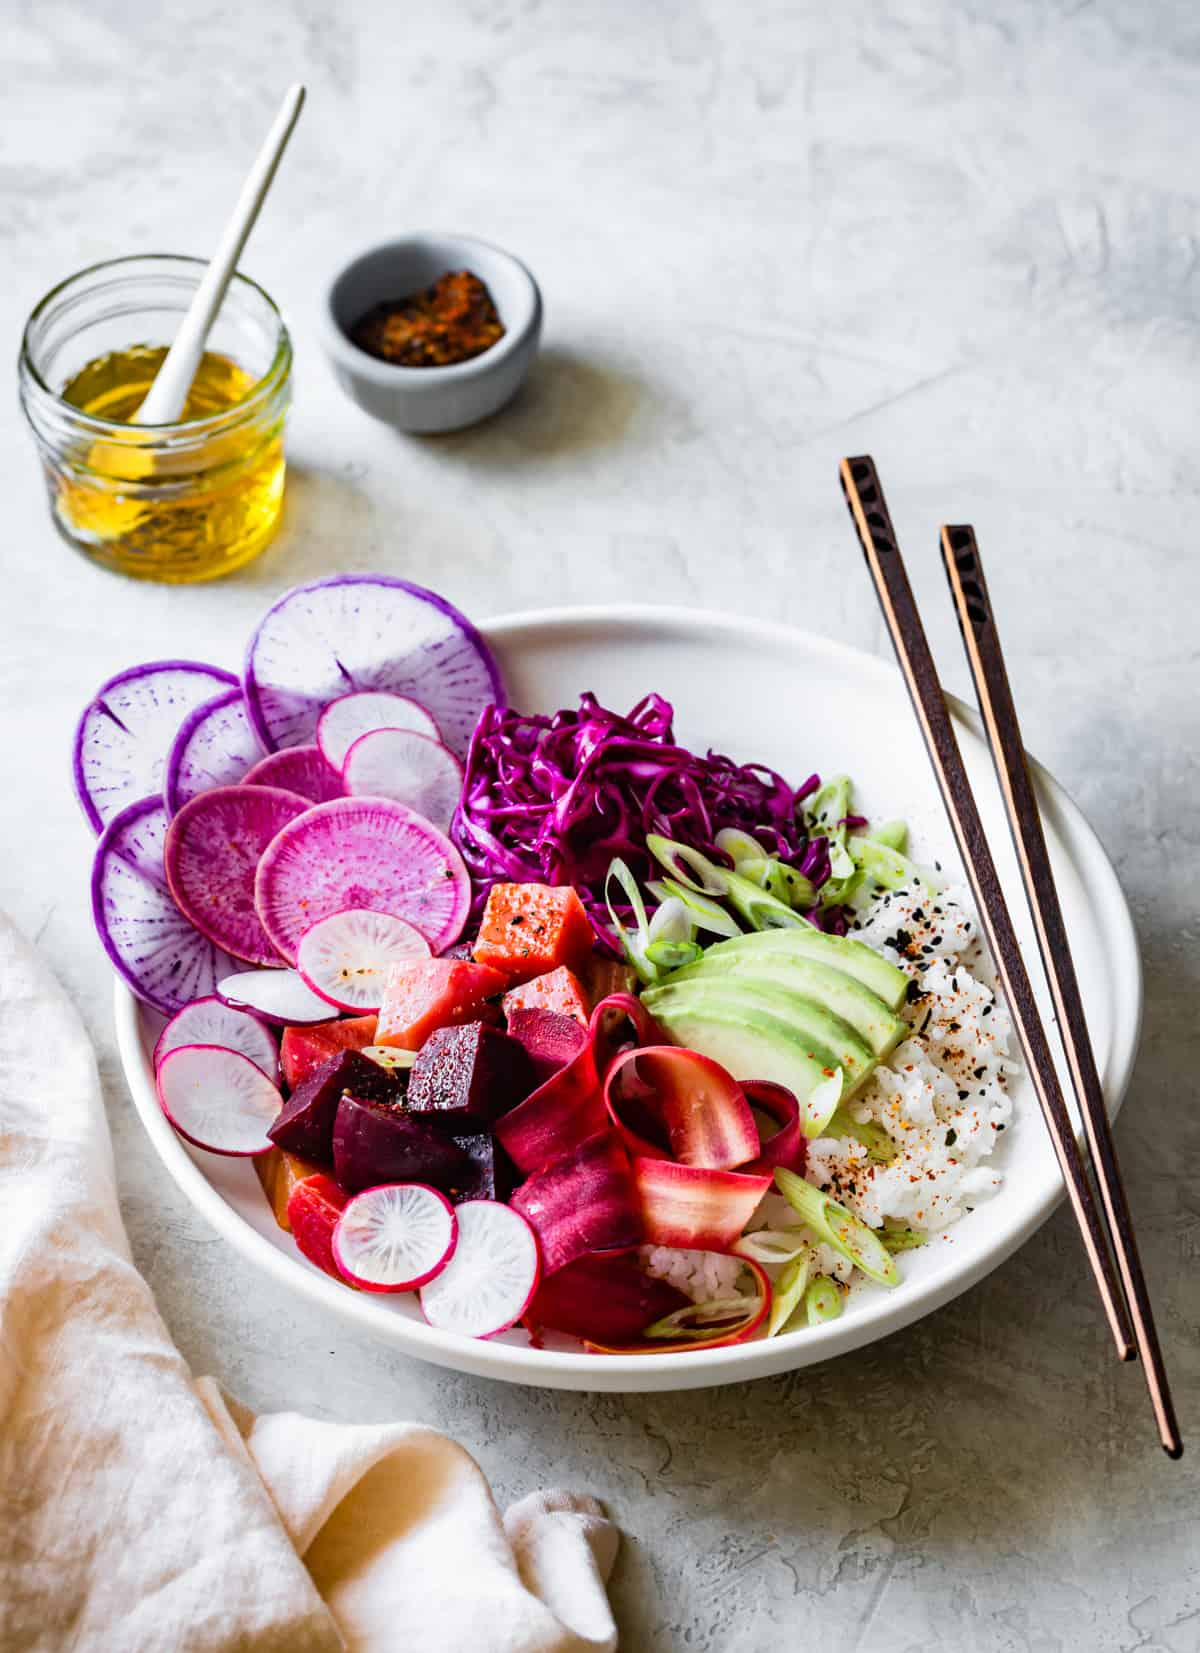 Vegan Poke Bowl Recipe with Marinated Beets